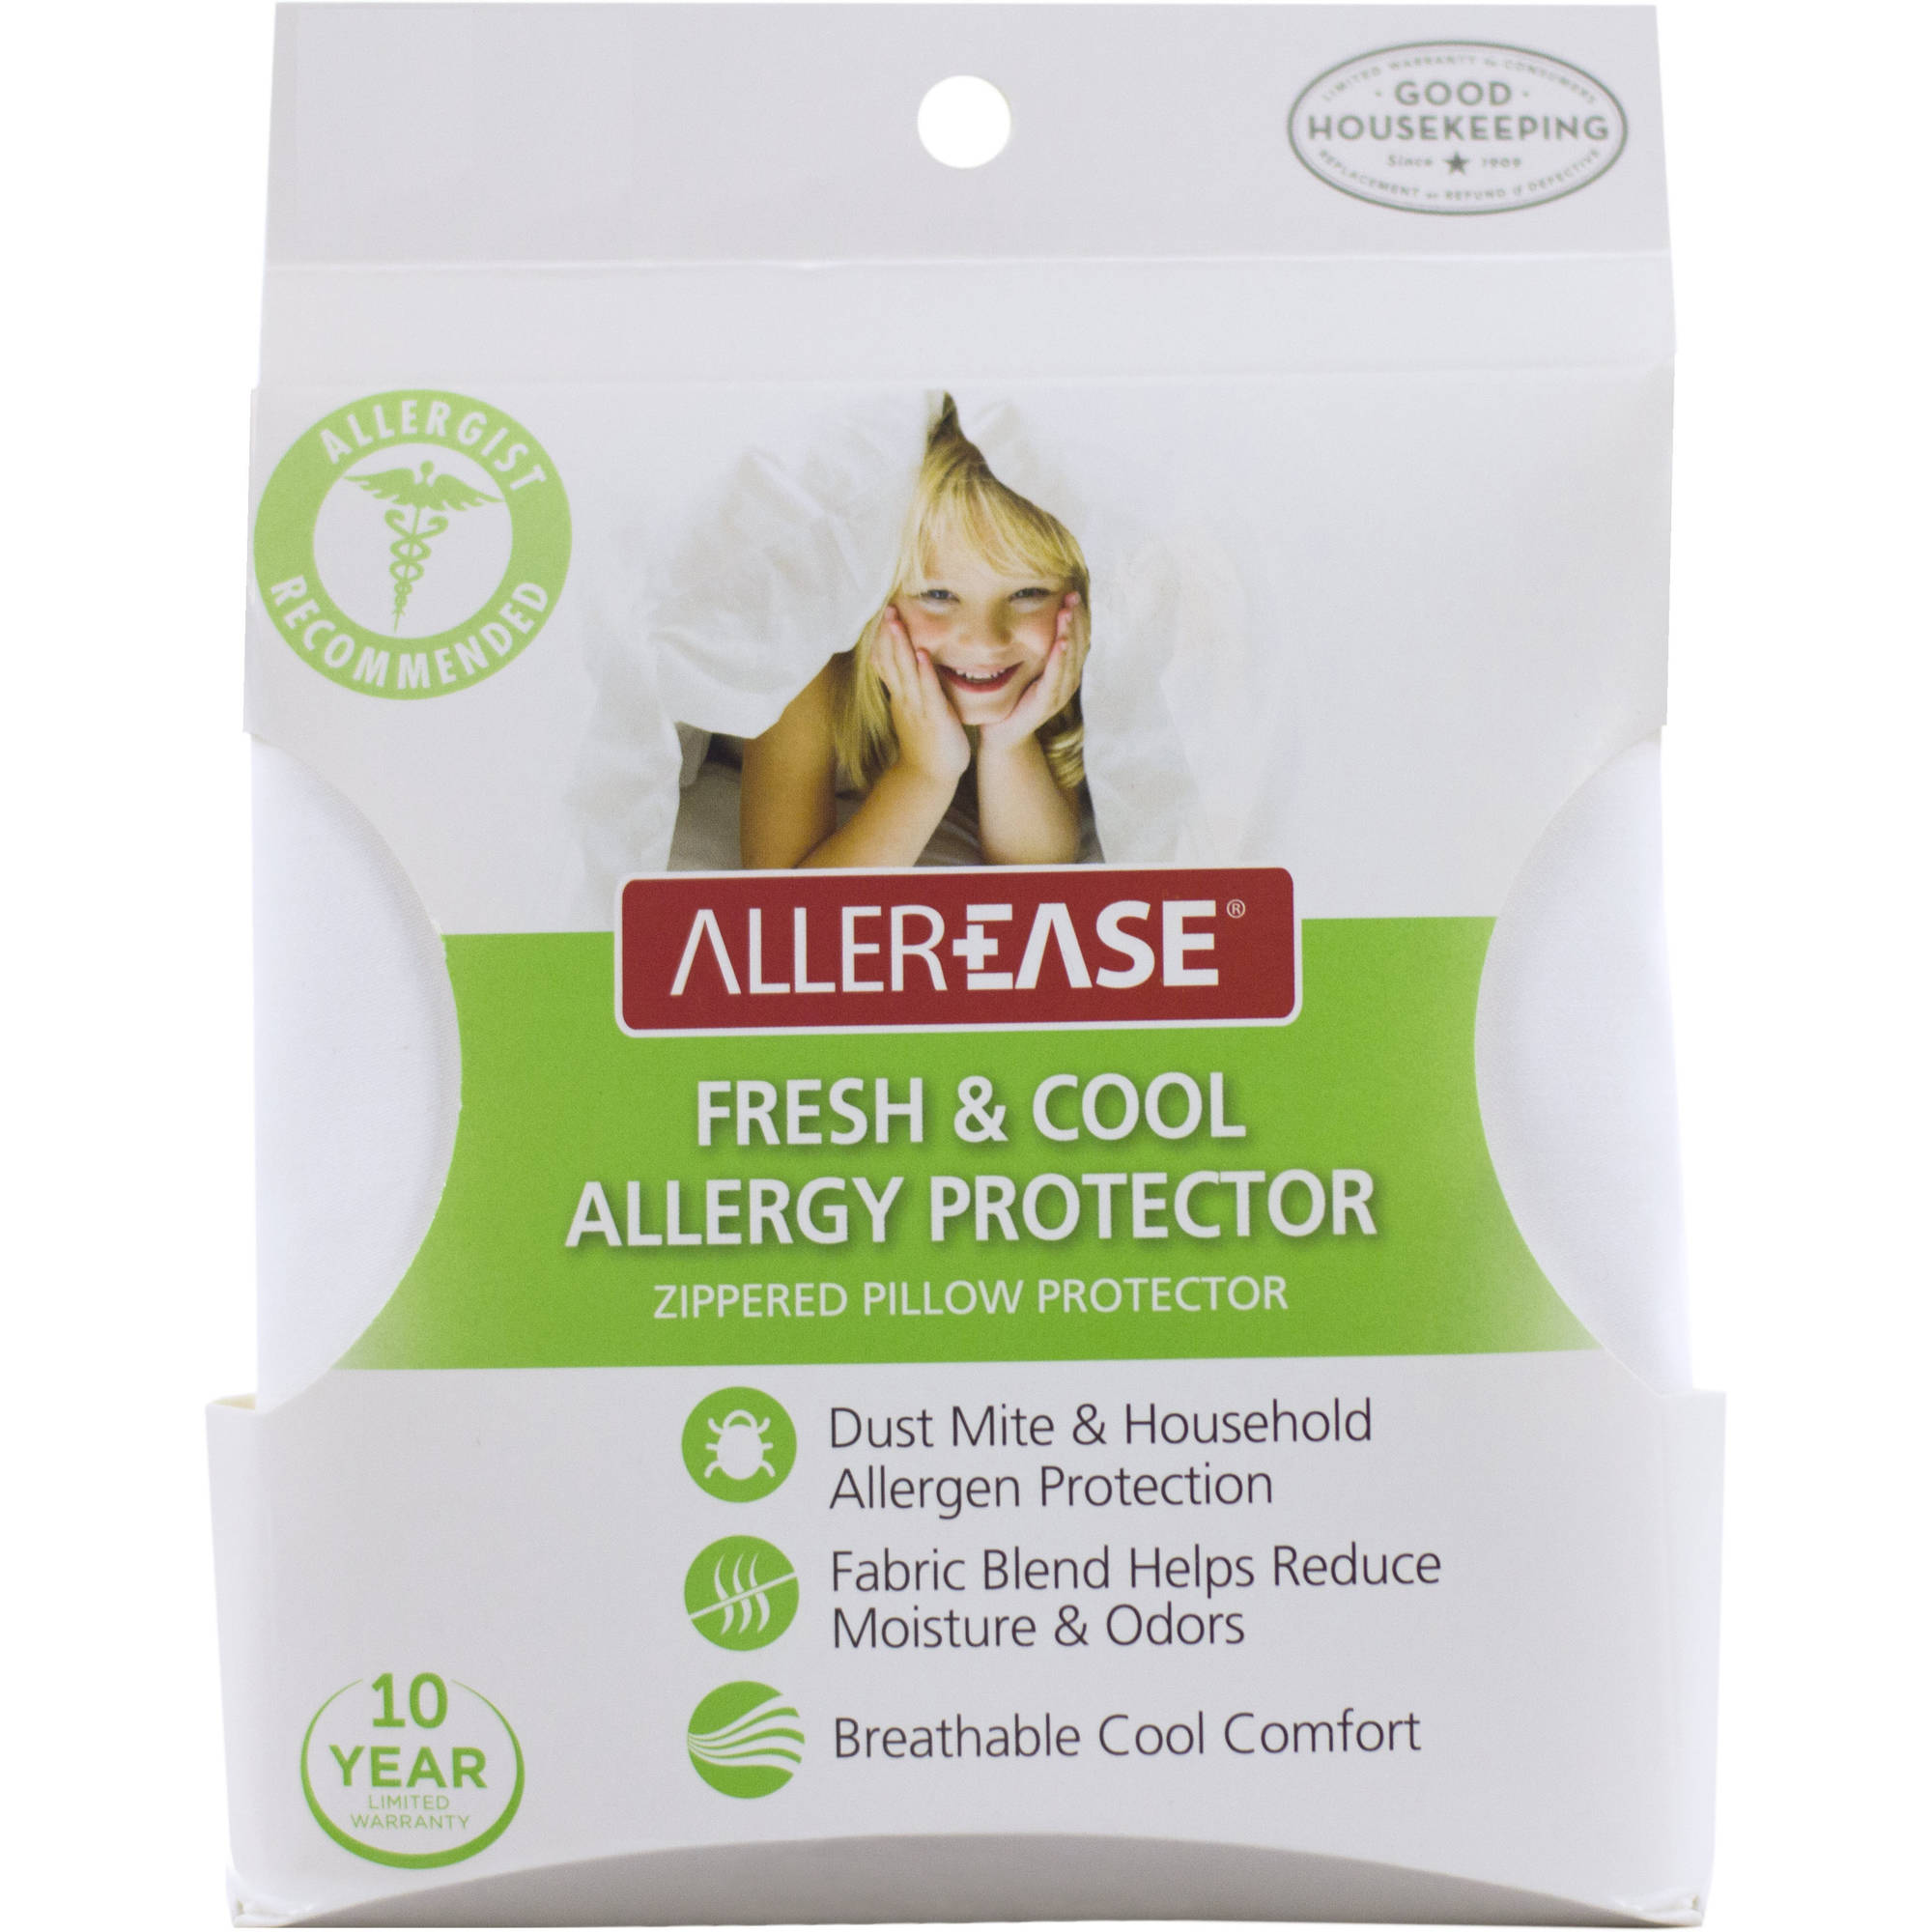 AllerEase Fresh & Cool Allergy Protection Zippered Pillow Cover, Standard Queen by American Textile Company